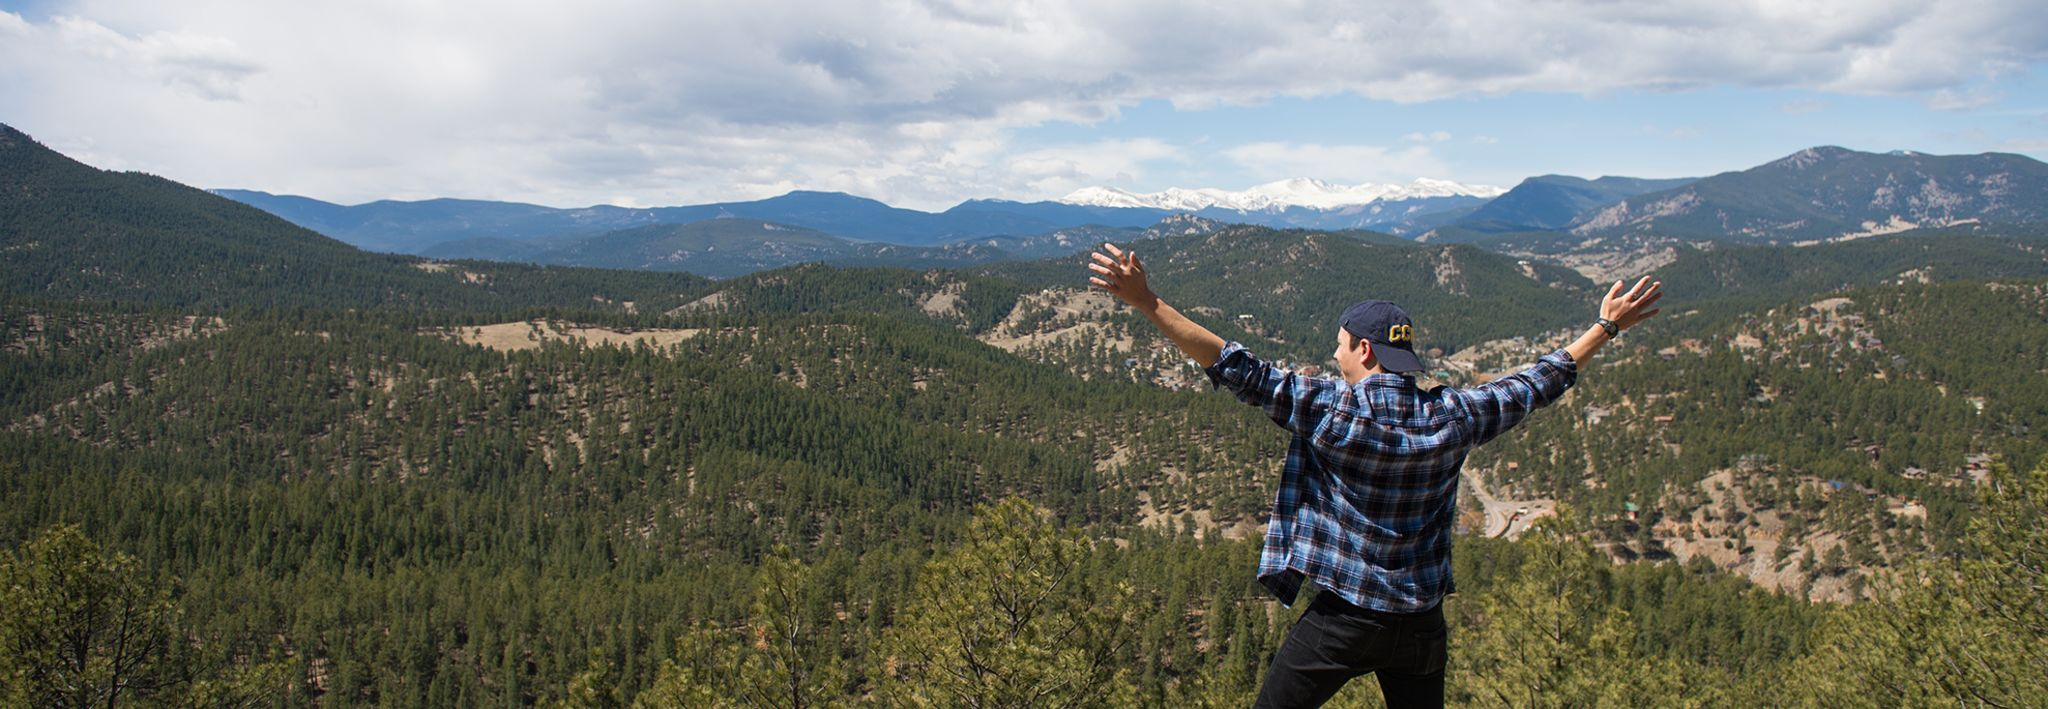 A CCU student is posing in the mountains of Colorado.